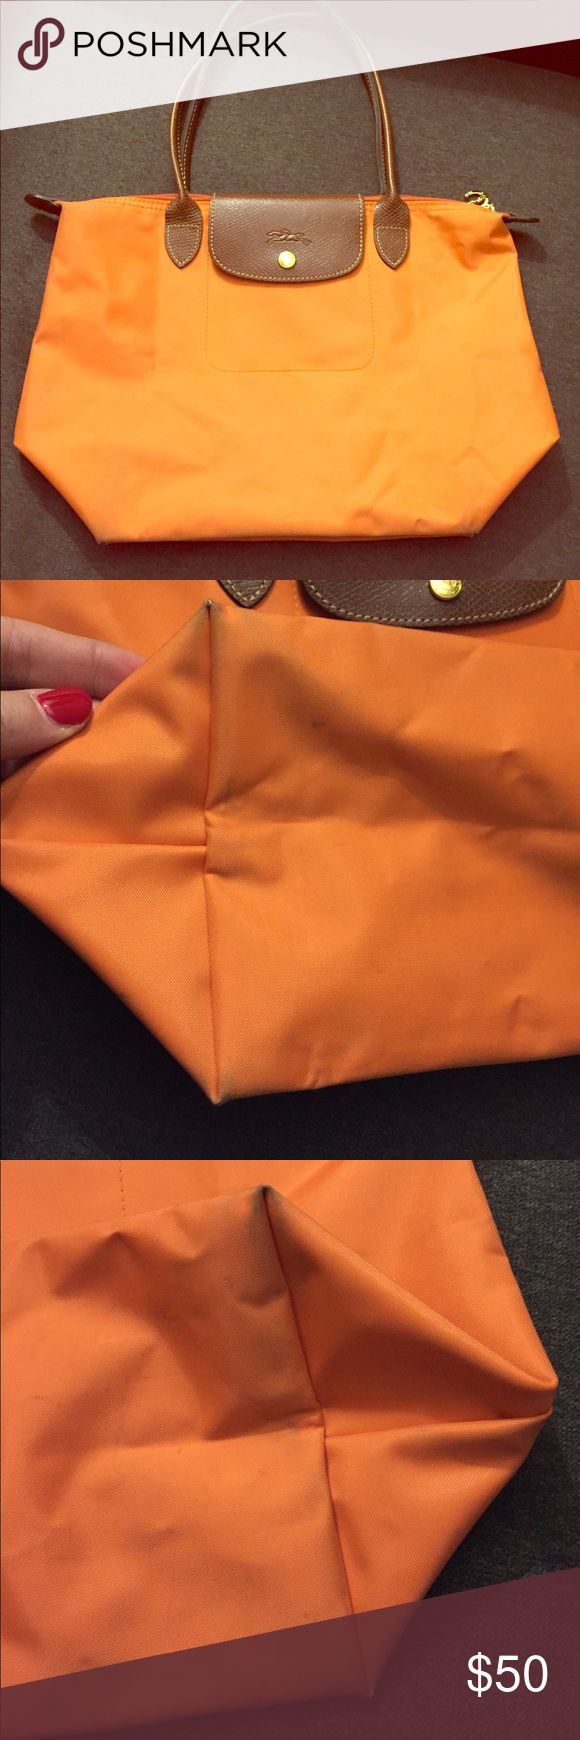 Flash sale!! Longchamp orange medium sized bag Minor wear- please see all pictures. Longchamp Bags